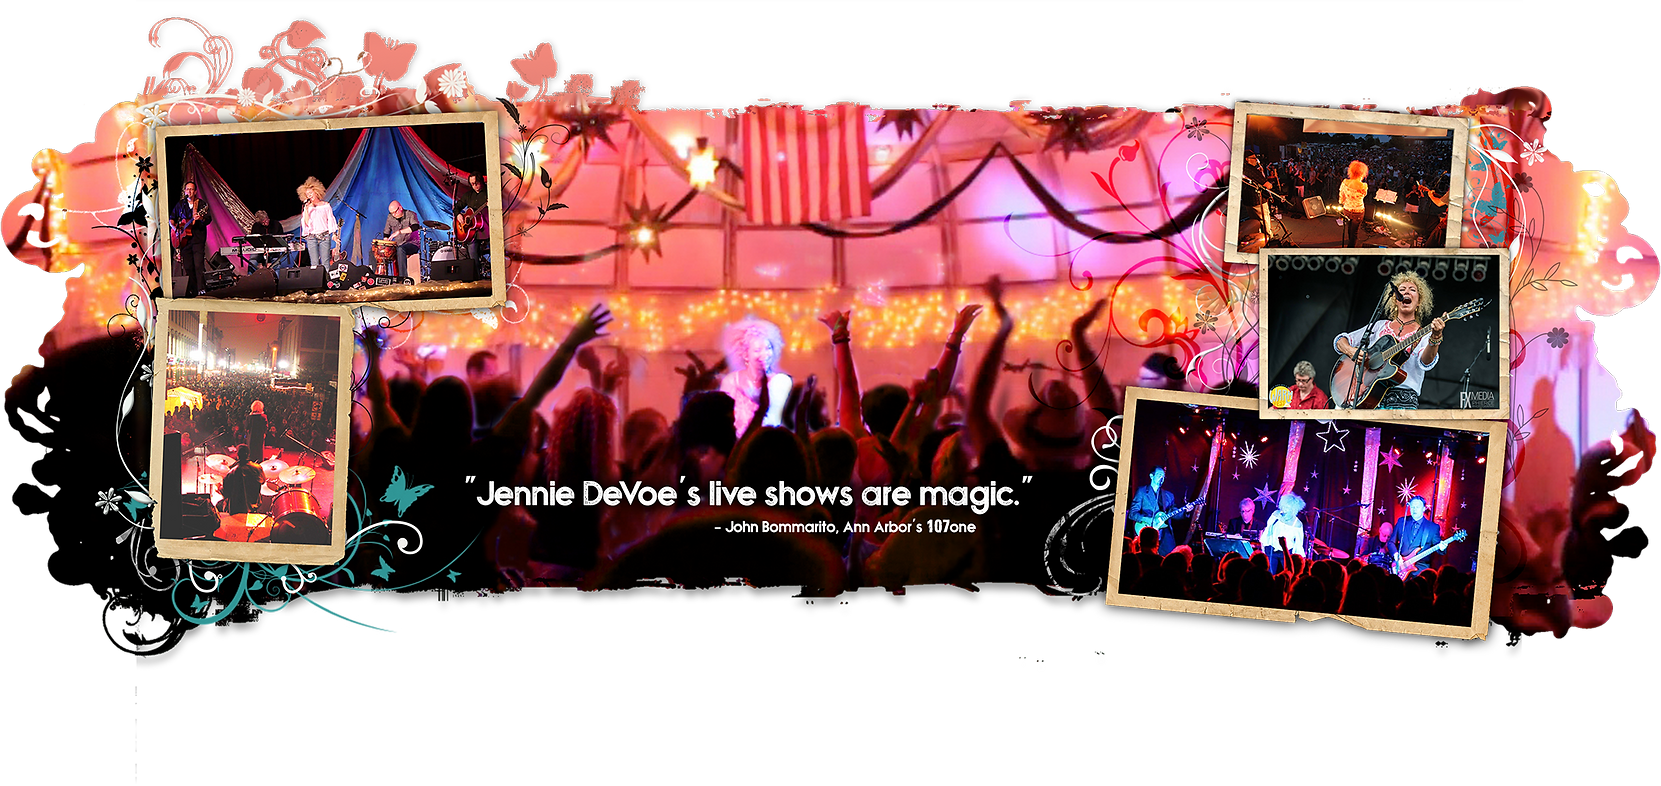 """Jennie DeVoe's live shows are magic."" - John Bommarito, Ann Arbor's 107one"